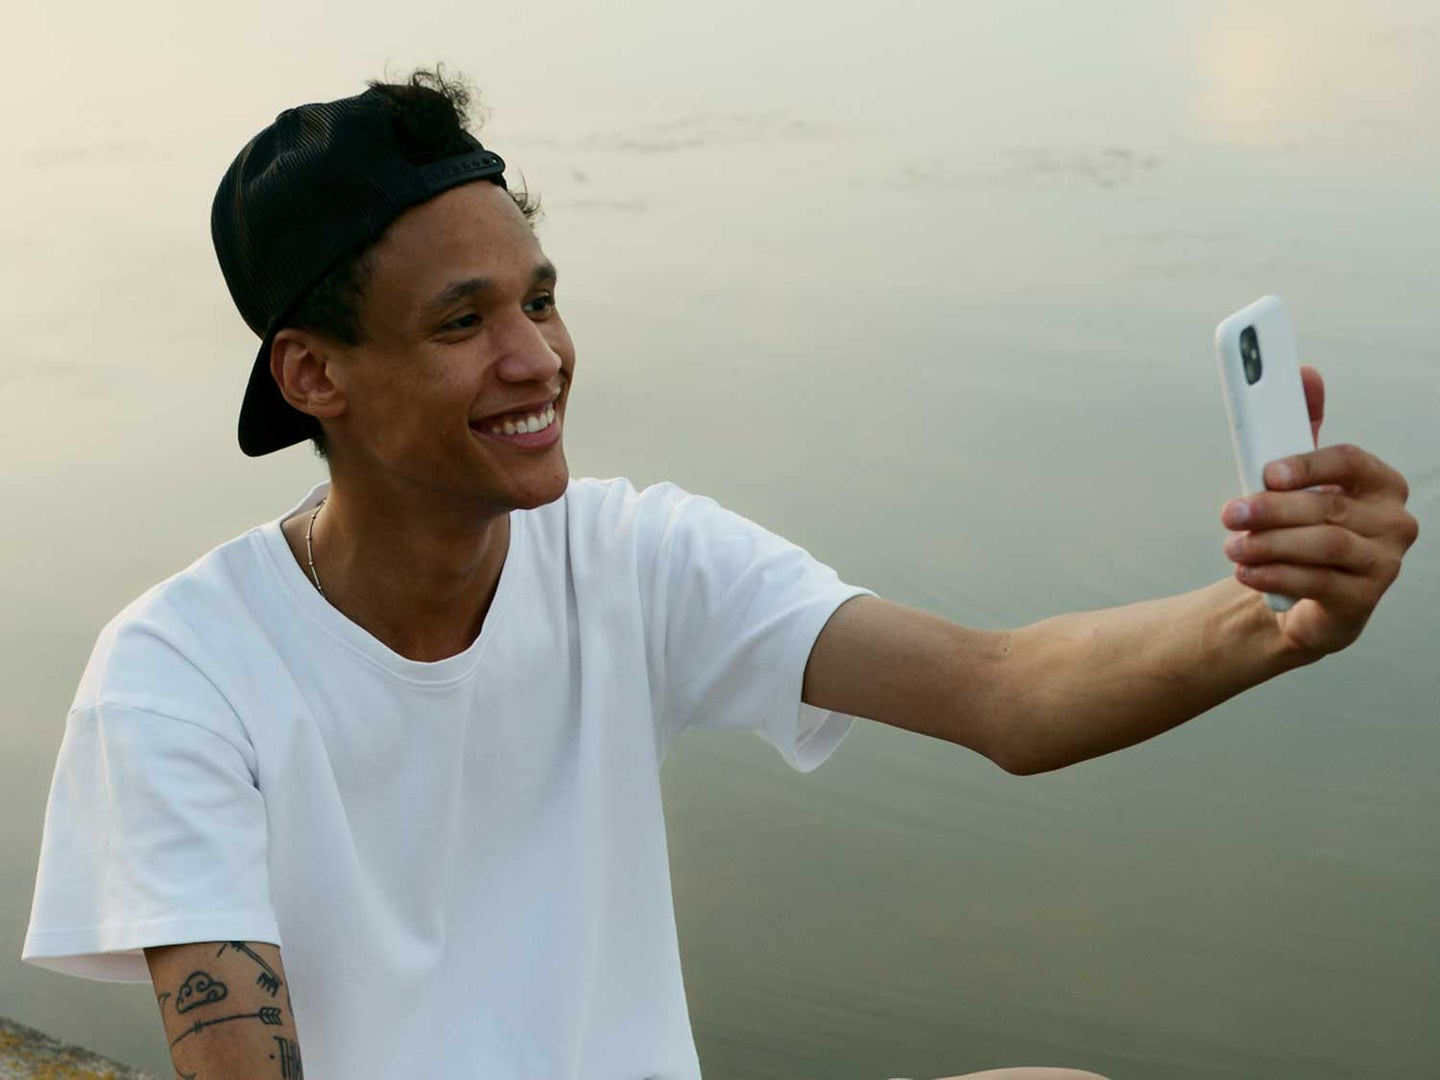 Man taking selfie with iPhone.